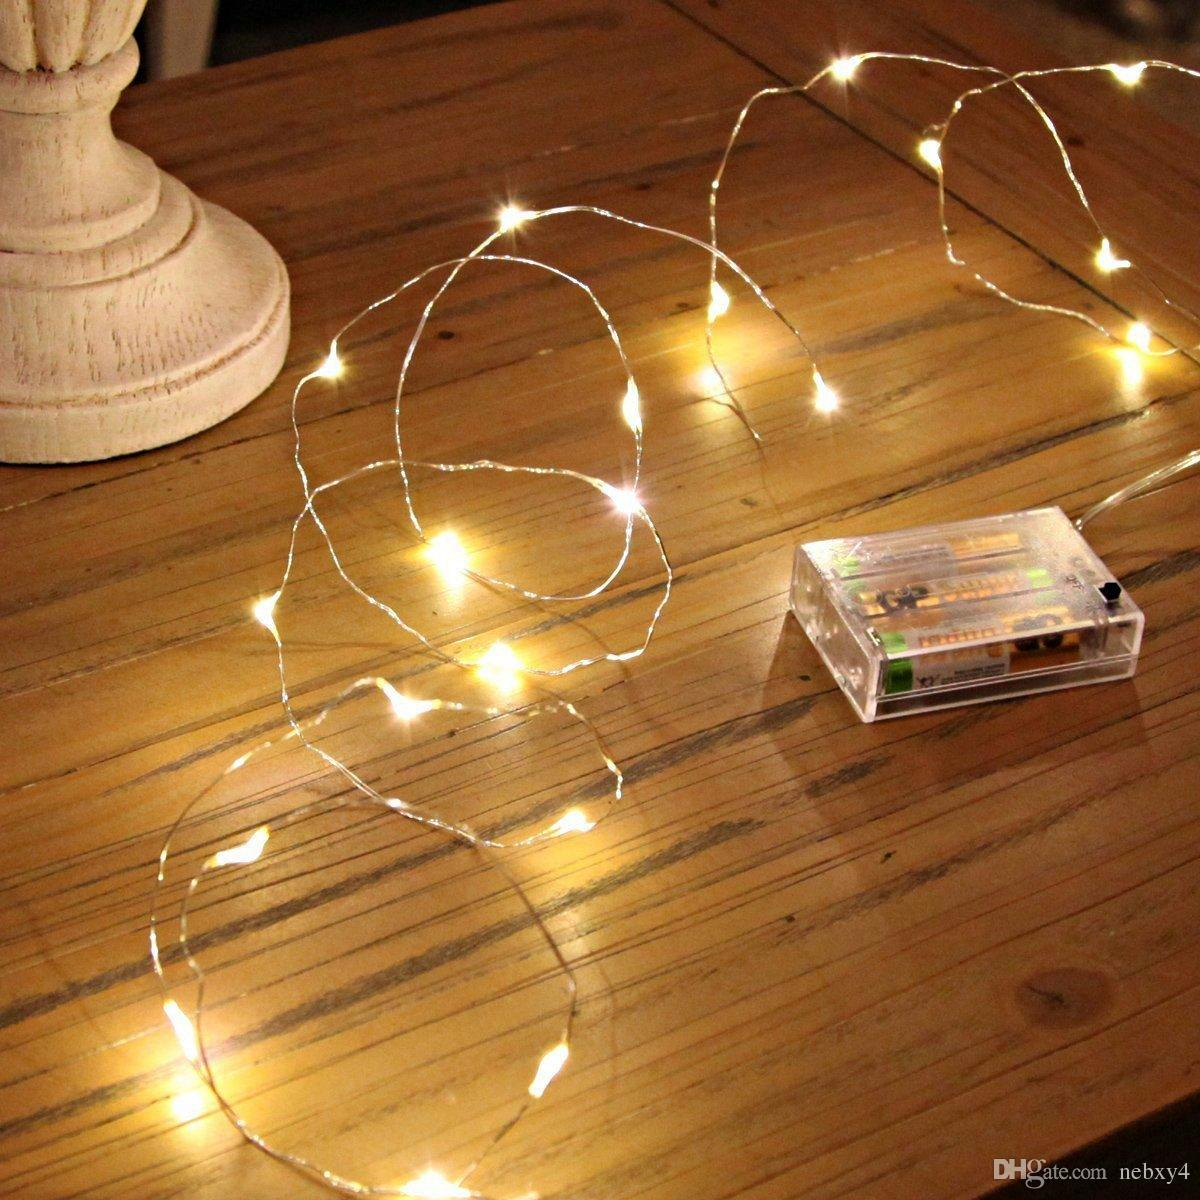 Outdoor Fairy Lights Battery Operated Led string lights mini battery powered copper wire starry fairy led string lights mini battery powered copper wire starry fairy lights battery operated lights for bedroom christmas5m16ft warm white battery powered workwithnaturefo